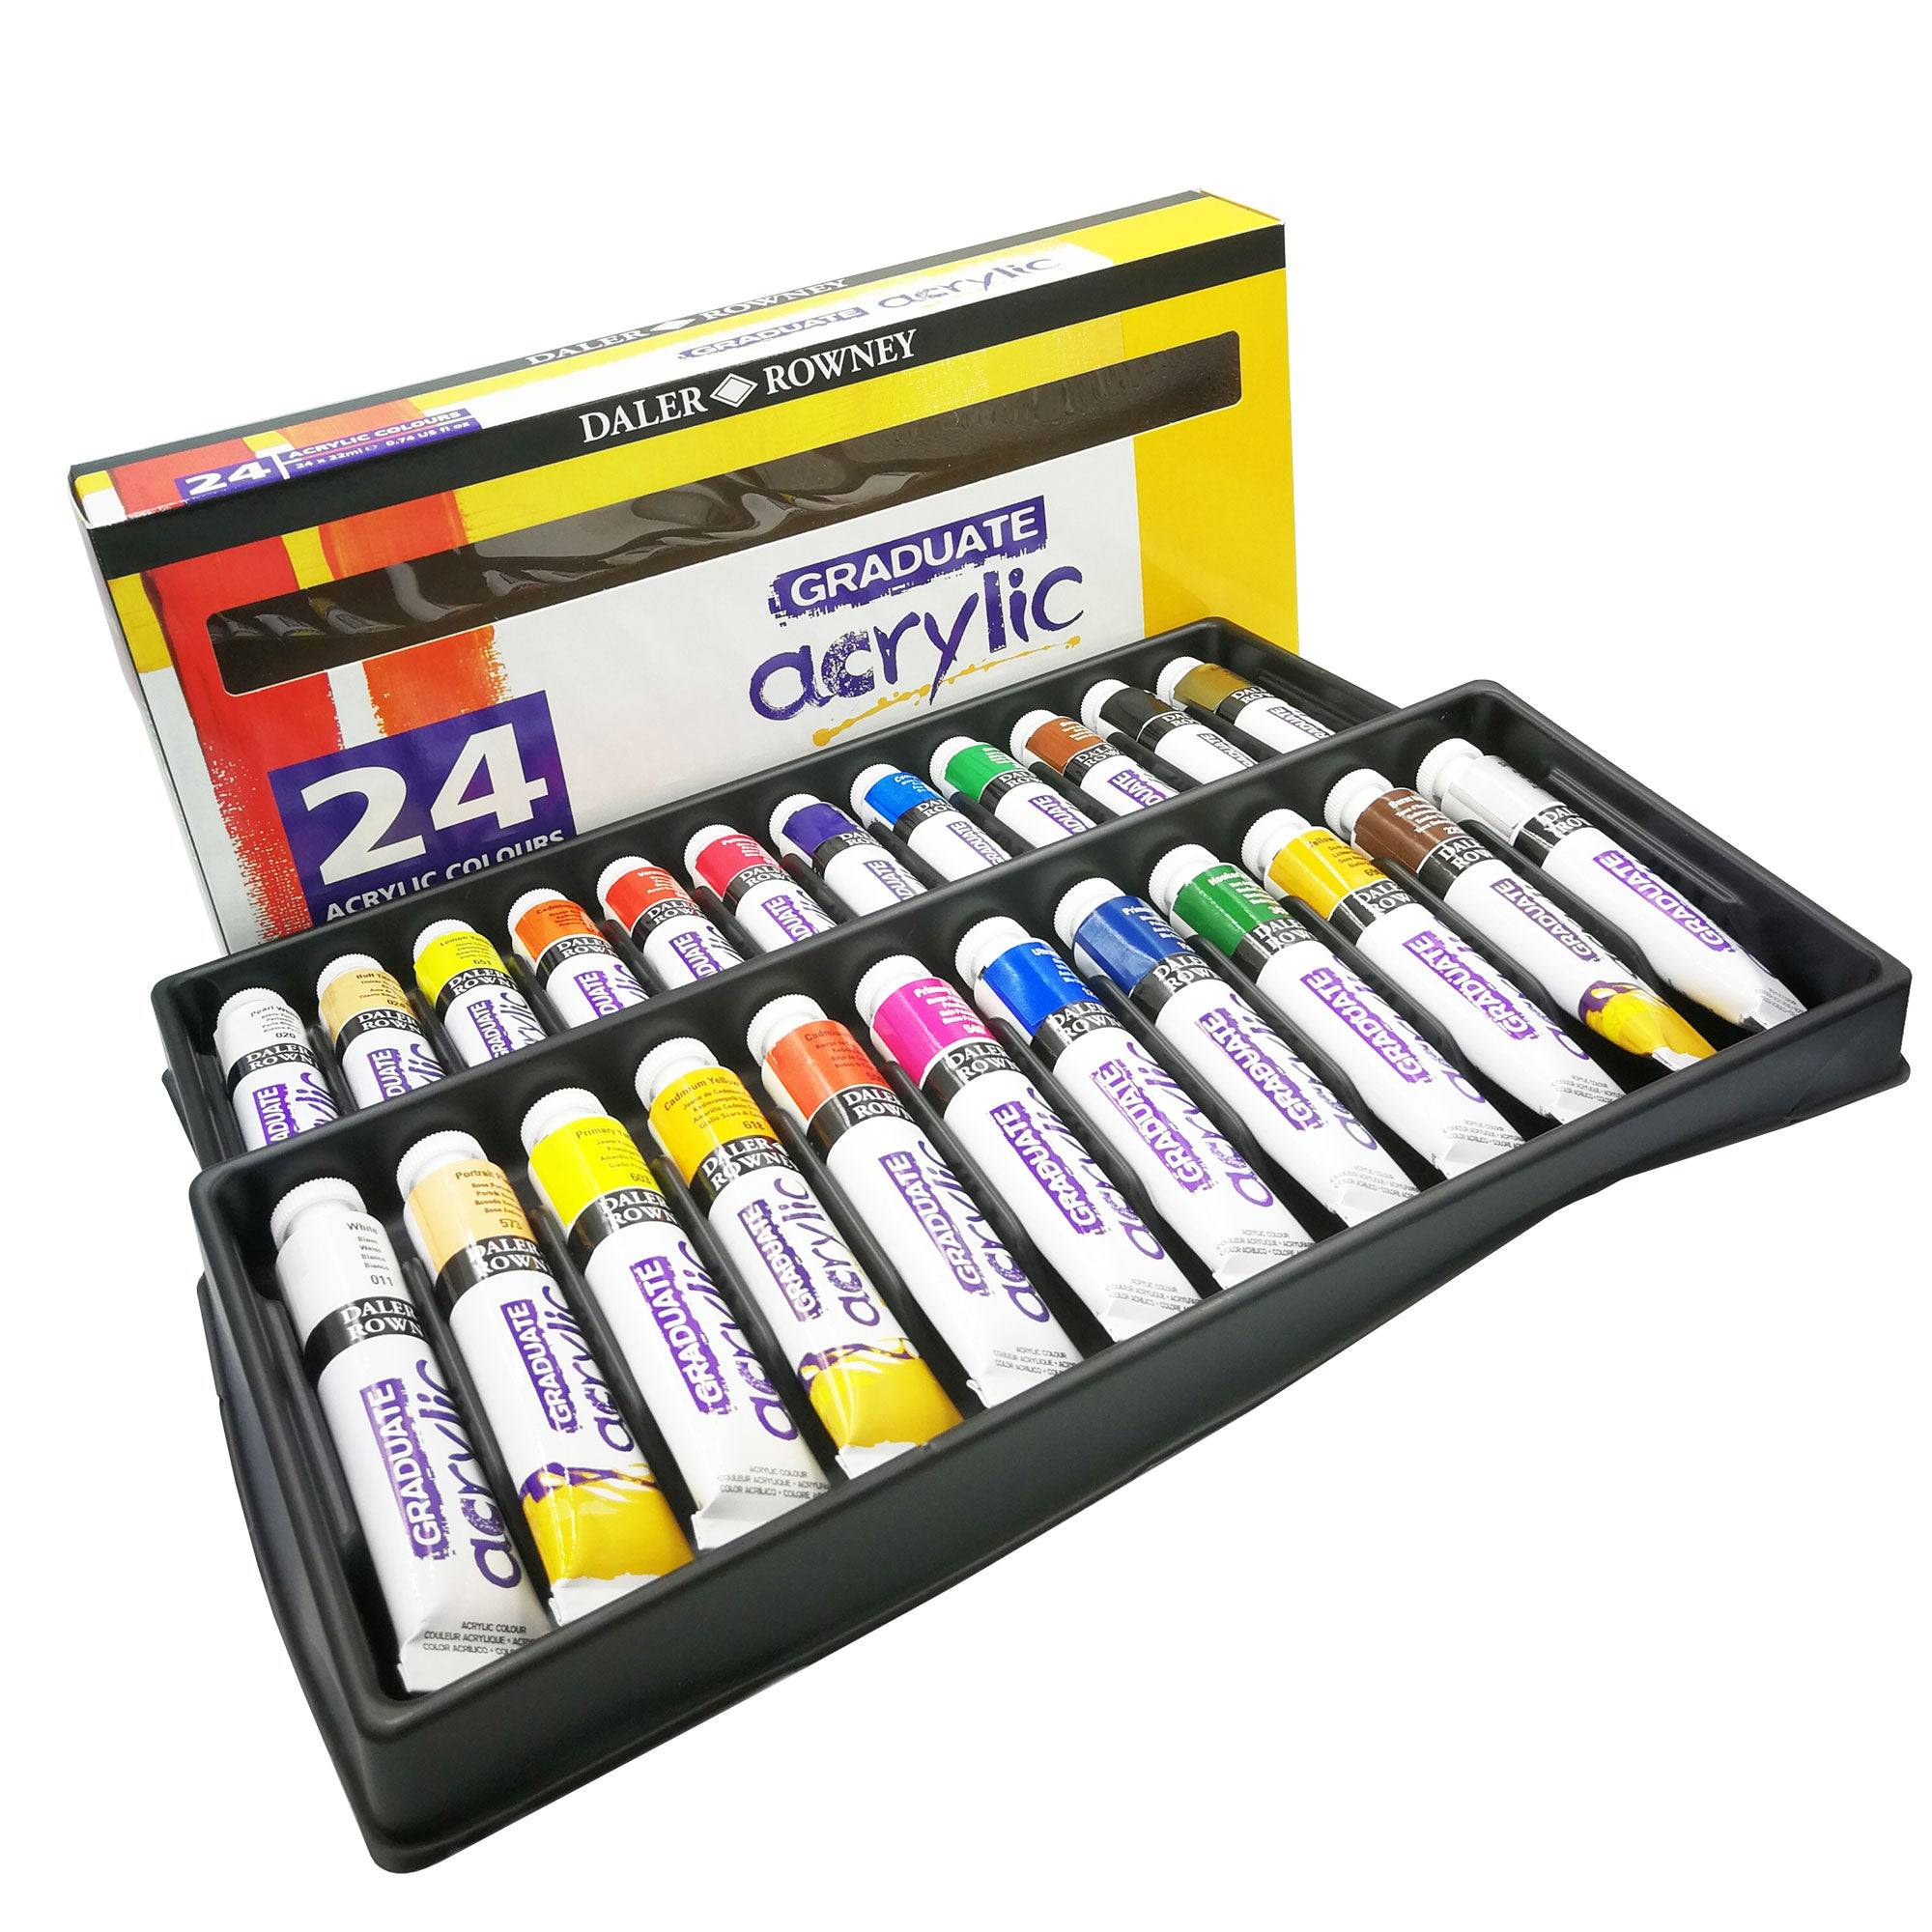 Daler Rowney Graduate Acrylic Colour Selection Set - 24 x 22ml Tubes